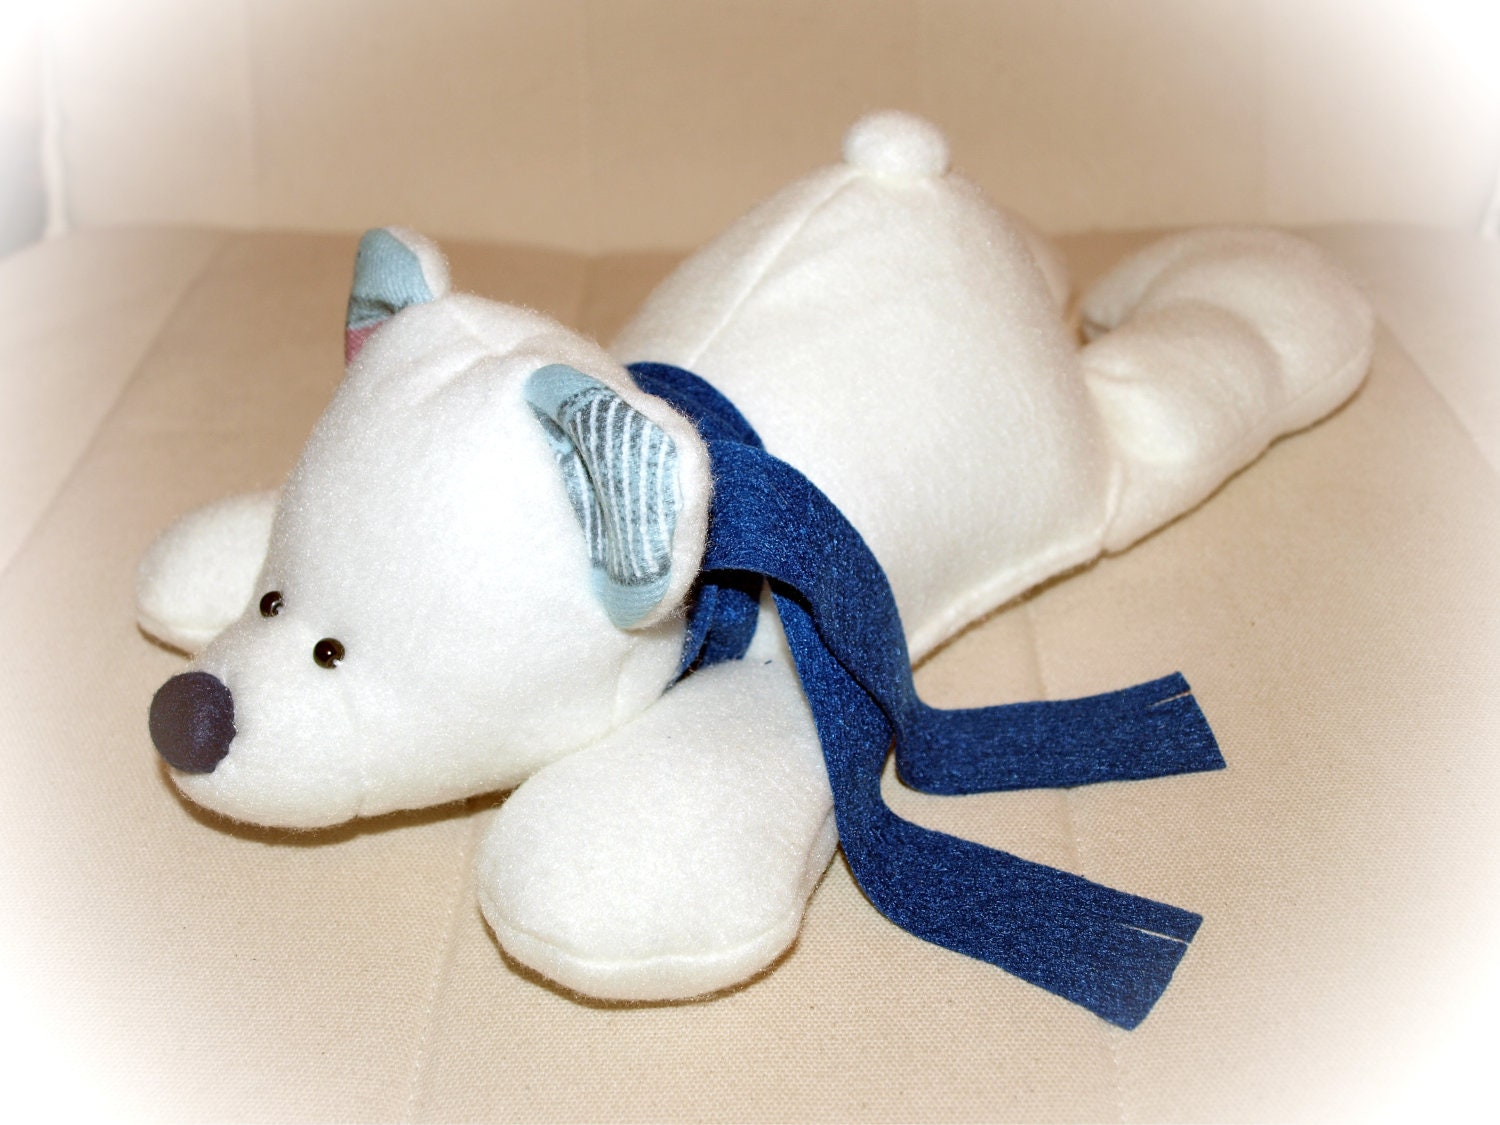 Soft stuffed polar bear,stuffed toy, christmas toy, plush bear, teddy bear toy, handmade - Fairybugcreative